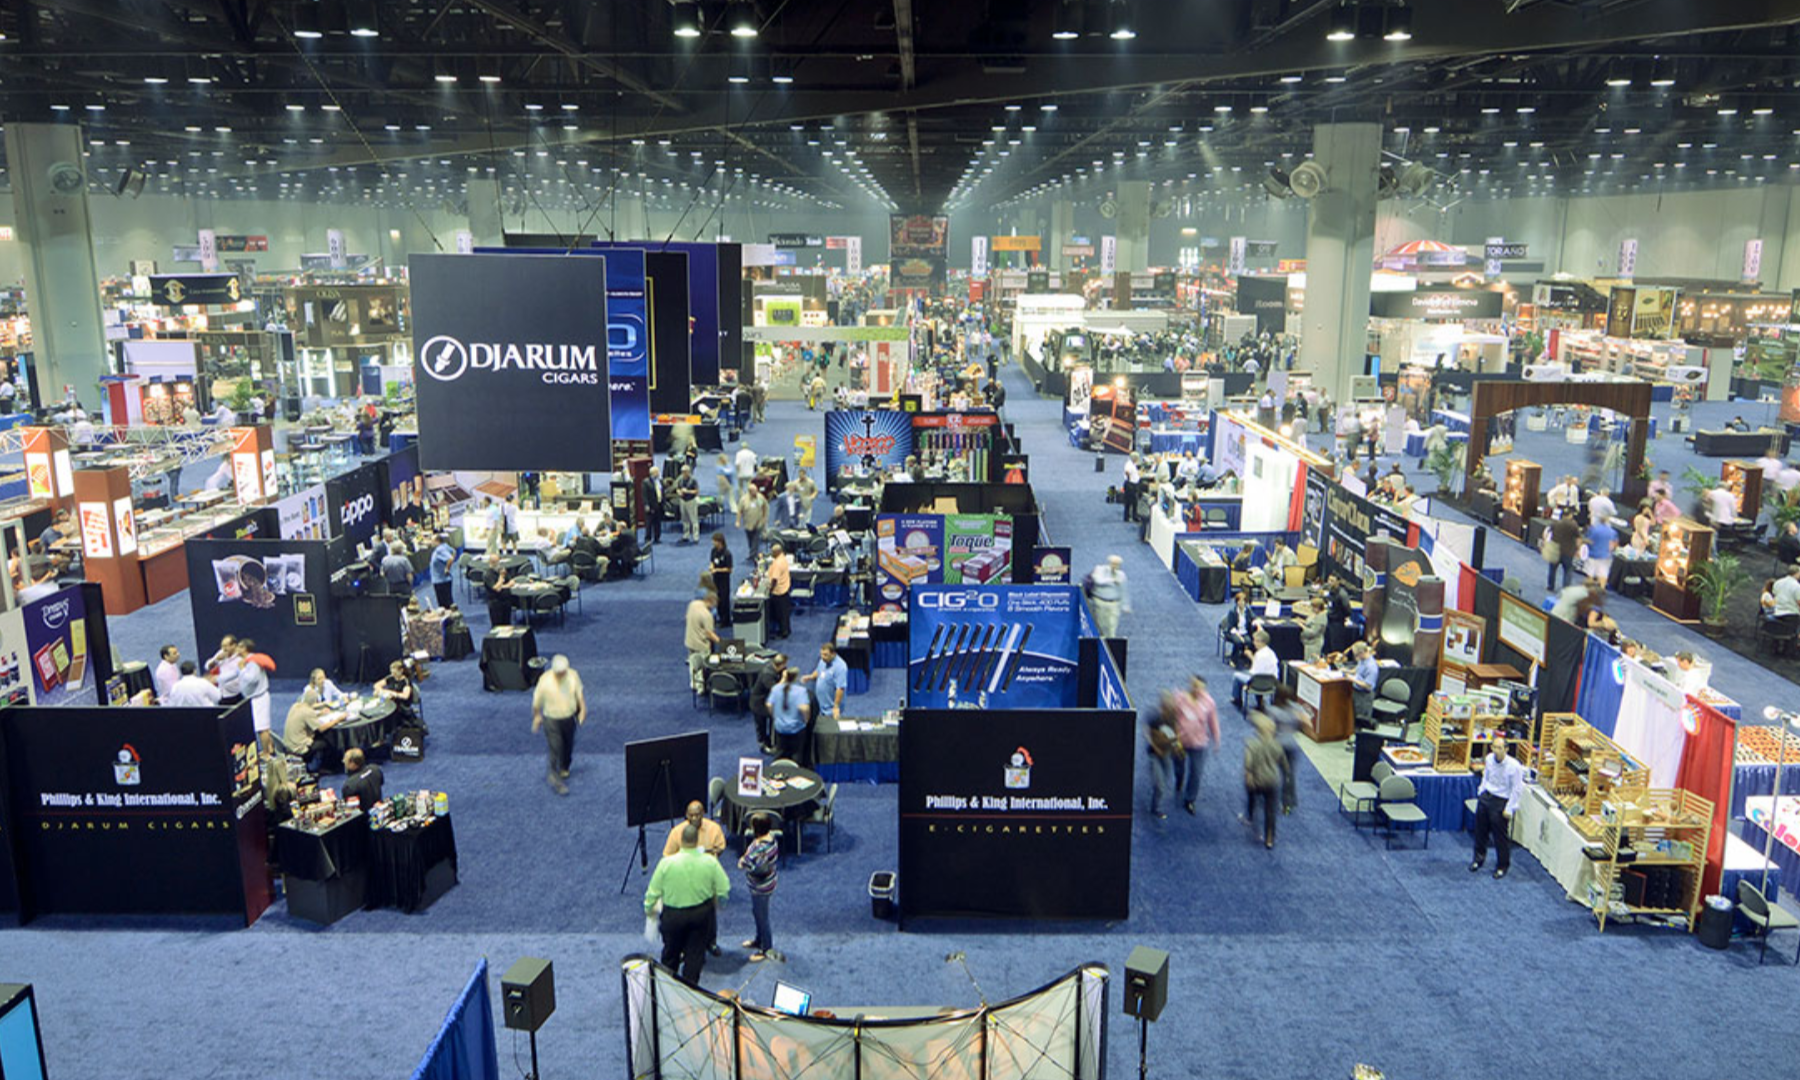 Trade Show Takeaways: 12 Lessons from Past Successes and Failures